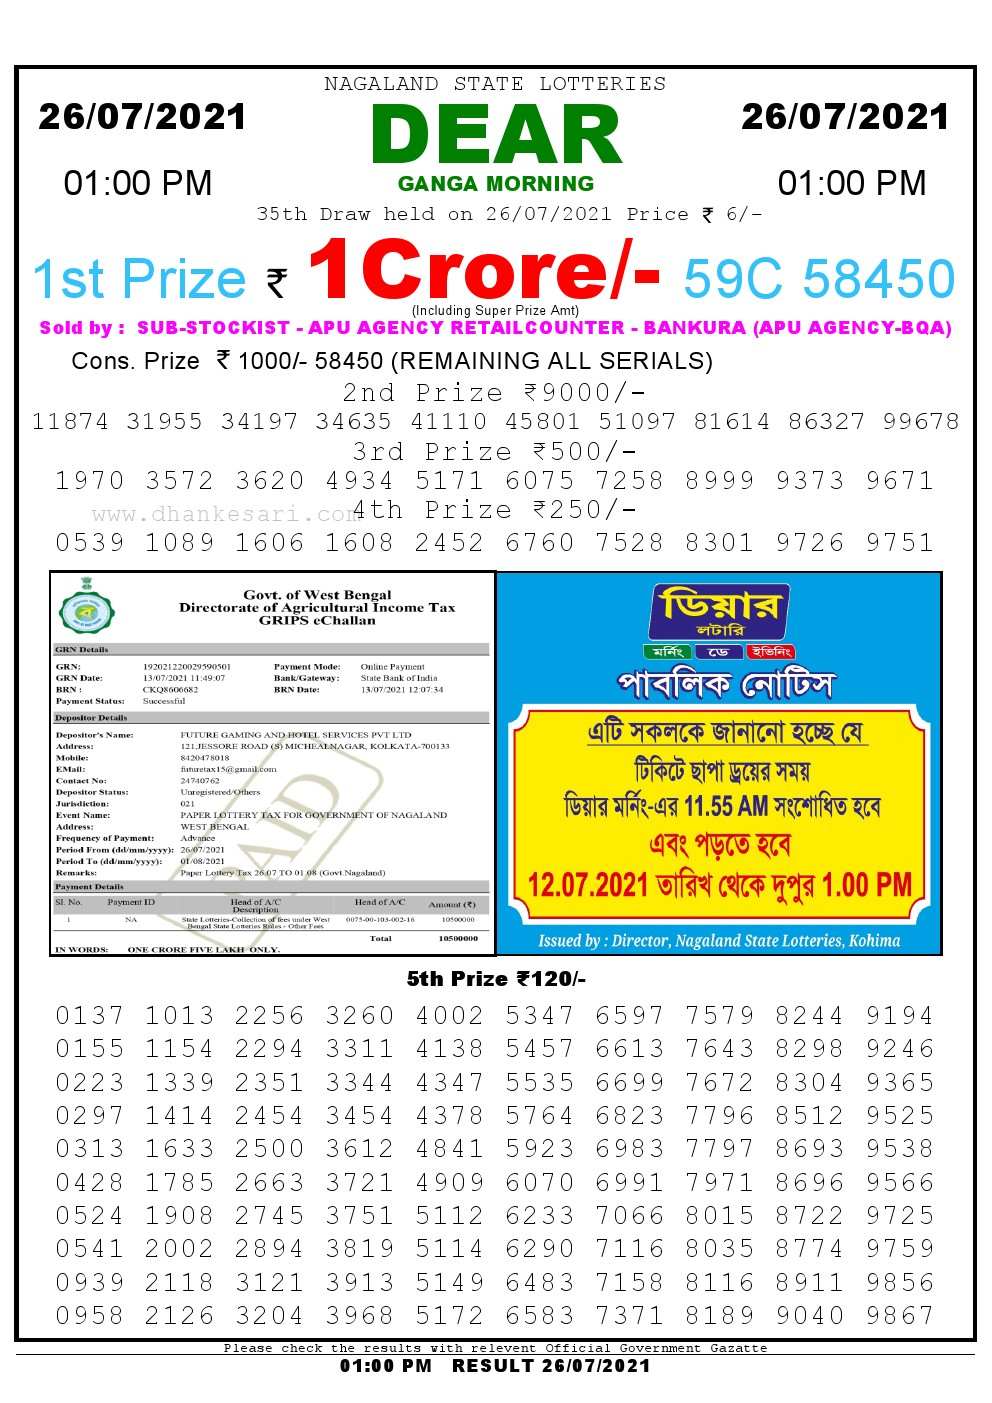 Dear Lottery Results 11:55 am 26/07/2021 Morning Nagaland State Lottery Result Pdf Download